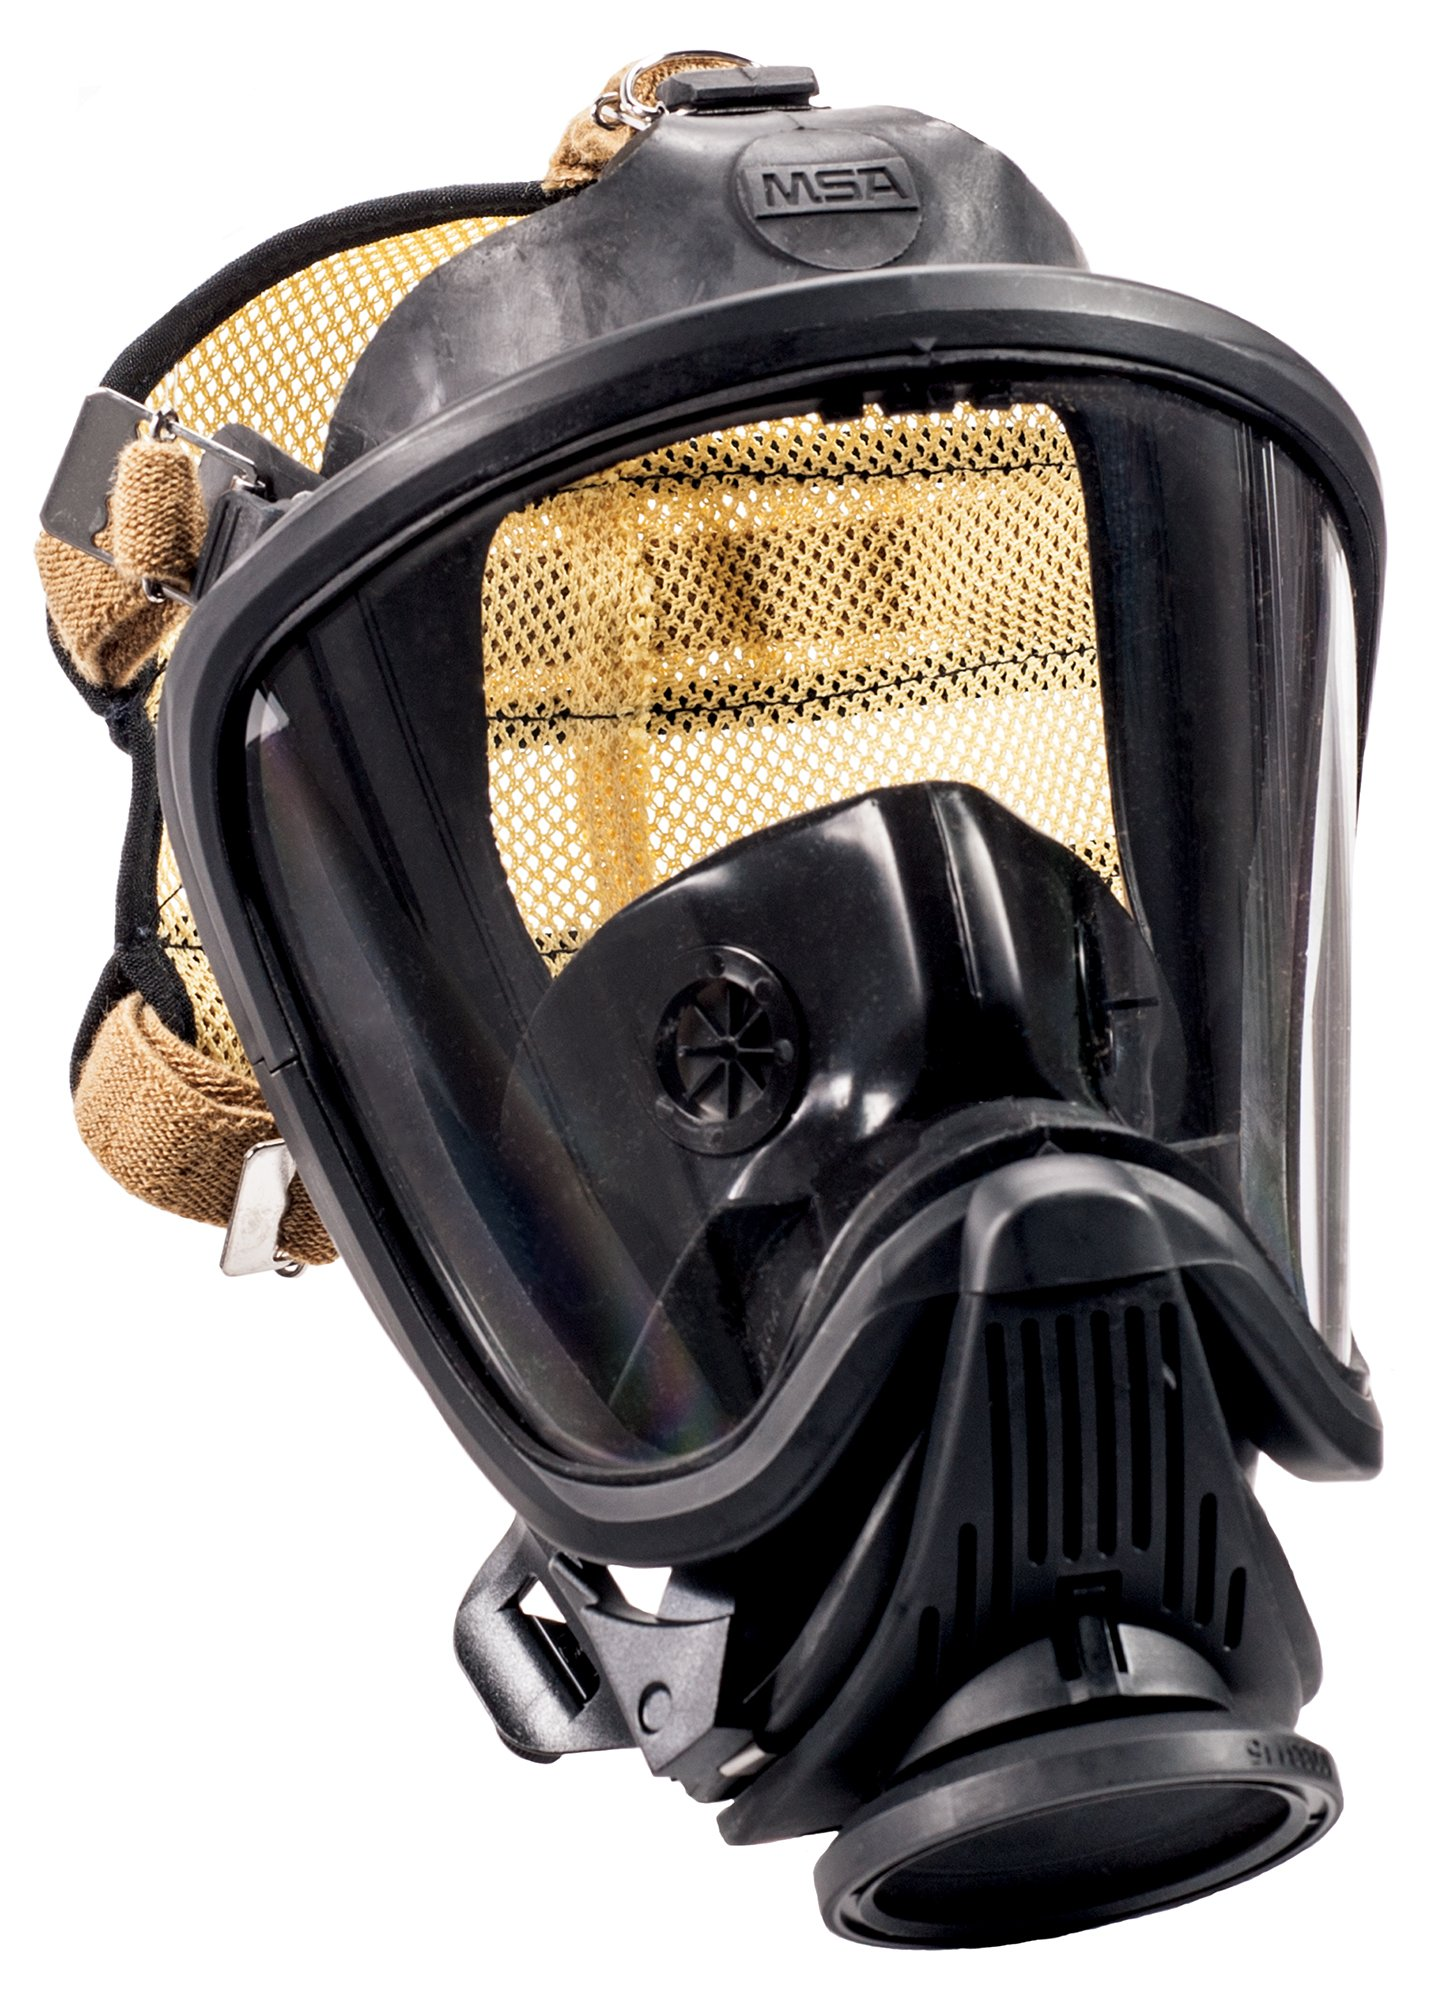 MSA Safety 10084828 Ultra Elite M7 Facepiece with Push-to-Connect Style Regulator, Speed-ON Head Harness, Nosecup and Fire Hawk M7 HUD Bracket, Large